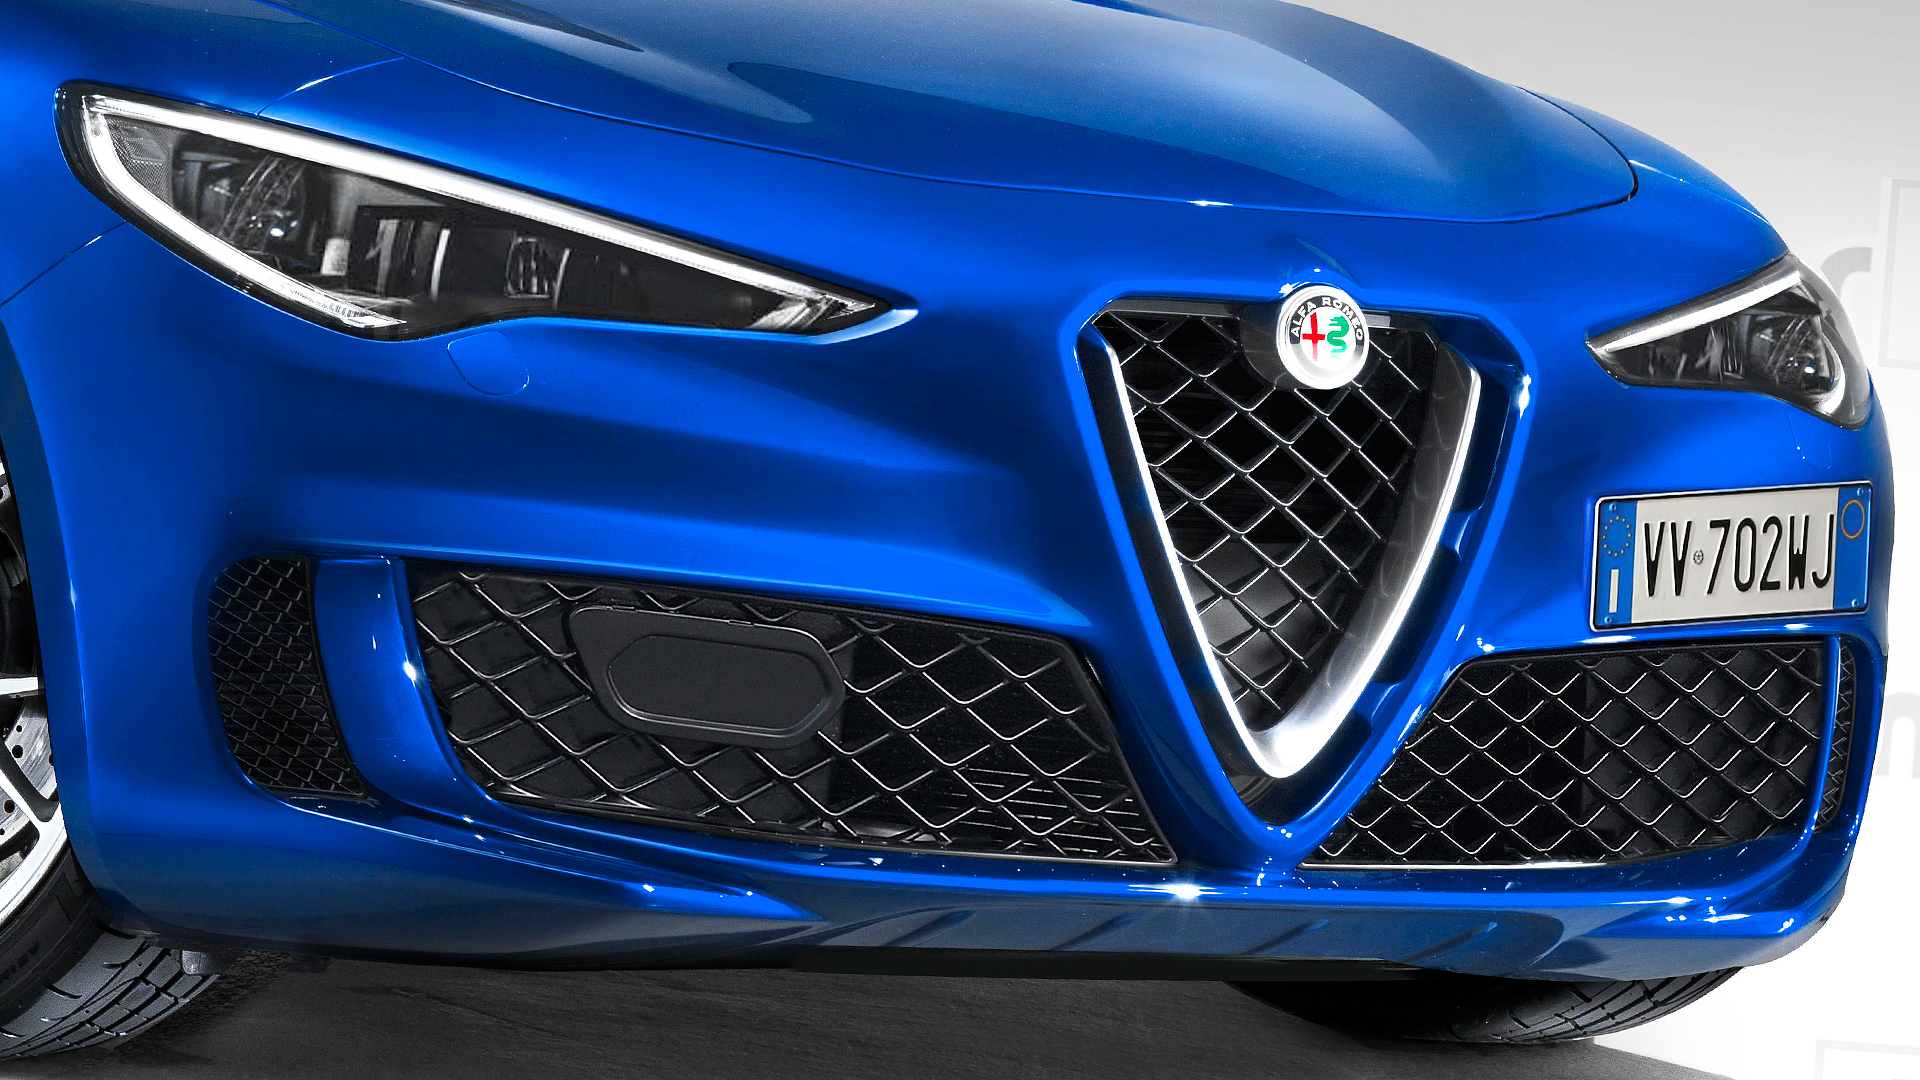 Italian car manufacturer Alfa Romeo is getting ready to show us a compact-sized crossover/SUV that it plans to sell as a cheaper alternative to the Stelvio